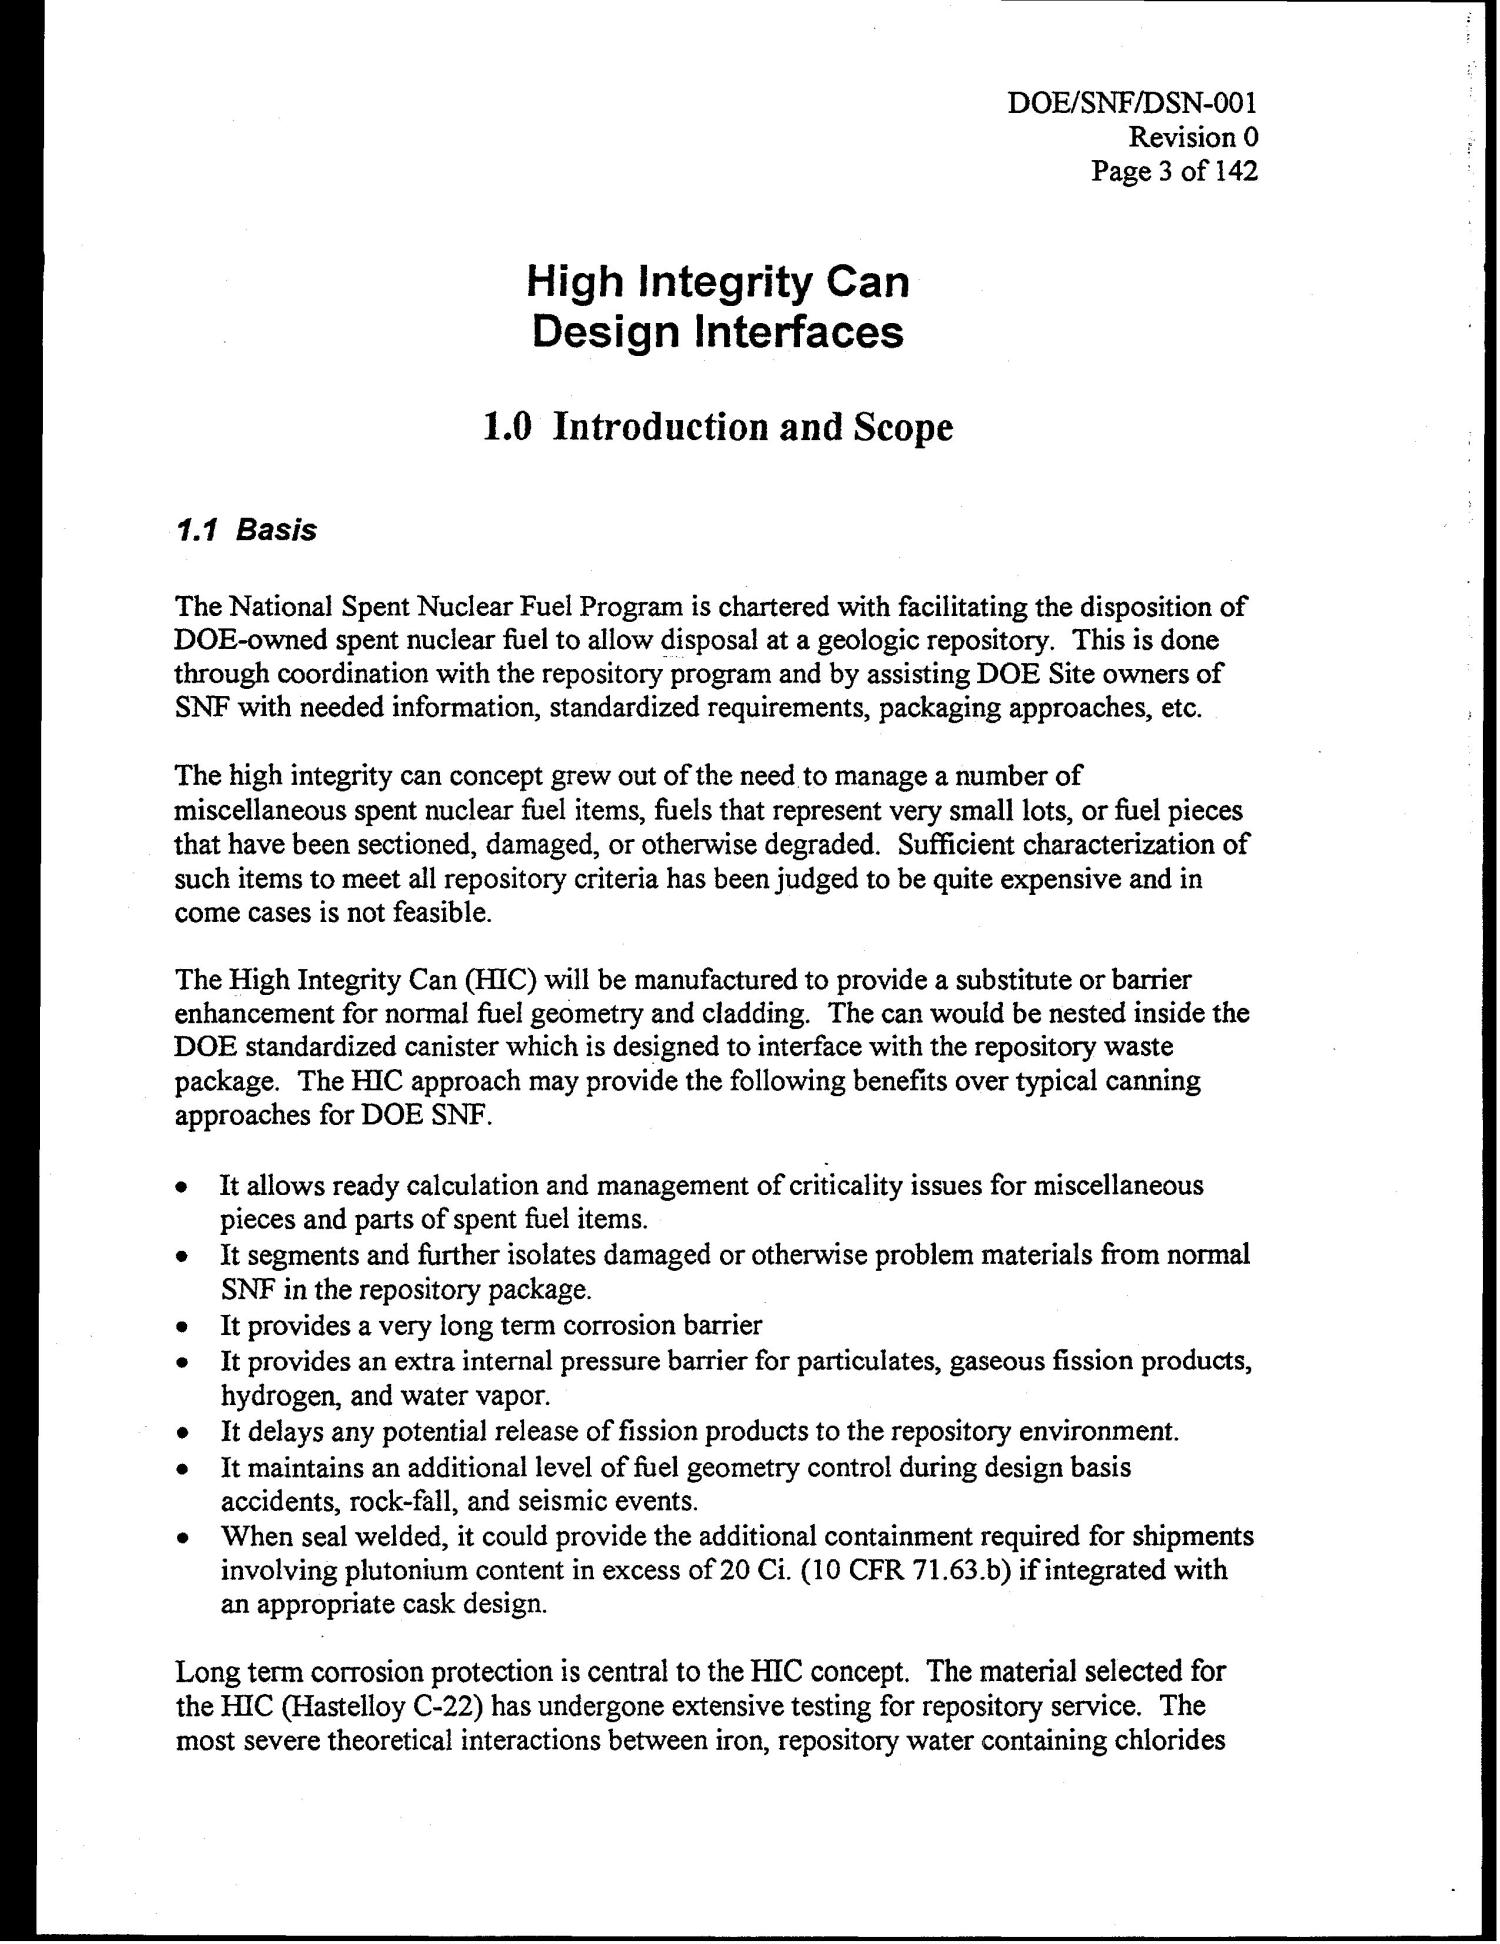 High Integrity Can Design Interfaces                                                                                                      [Sequence #]: 6 of 145